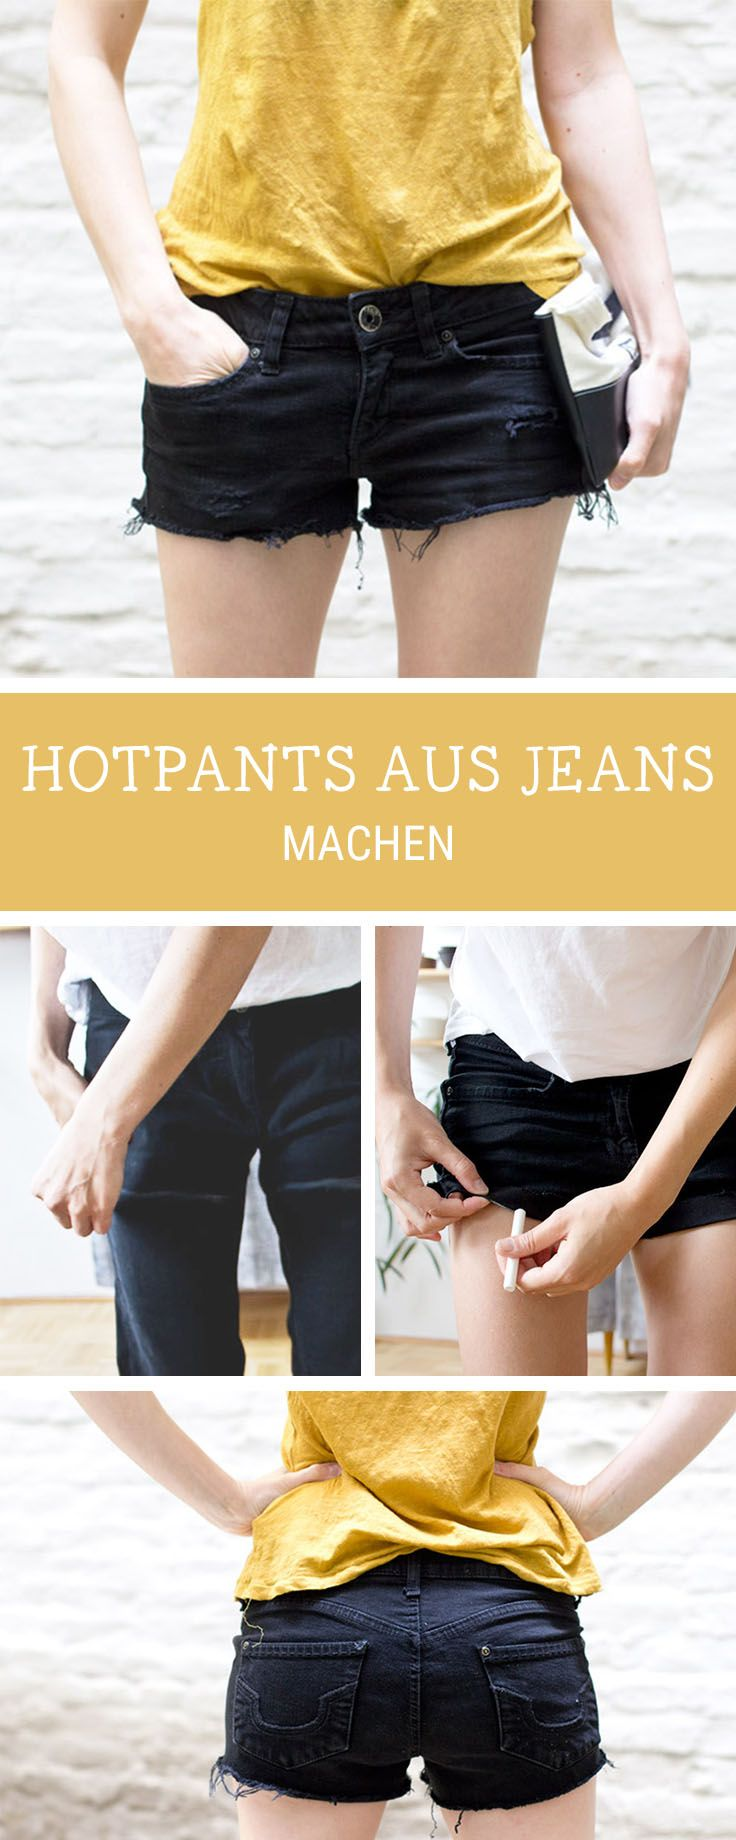 Nähanleitung für Hotpants: Wir zeigen Dir, wie Du alte Hosen in die perfekte Hotpants-Länge verwandelst / sewing inspiration: turn your old trousers into perfectly fitting hotpants, upcycling via DaWanda.com